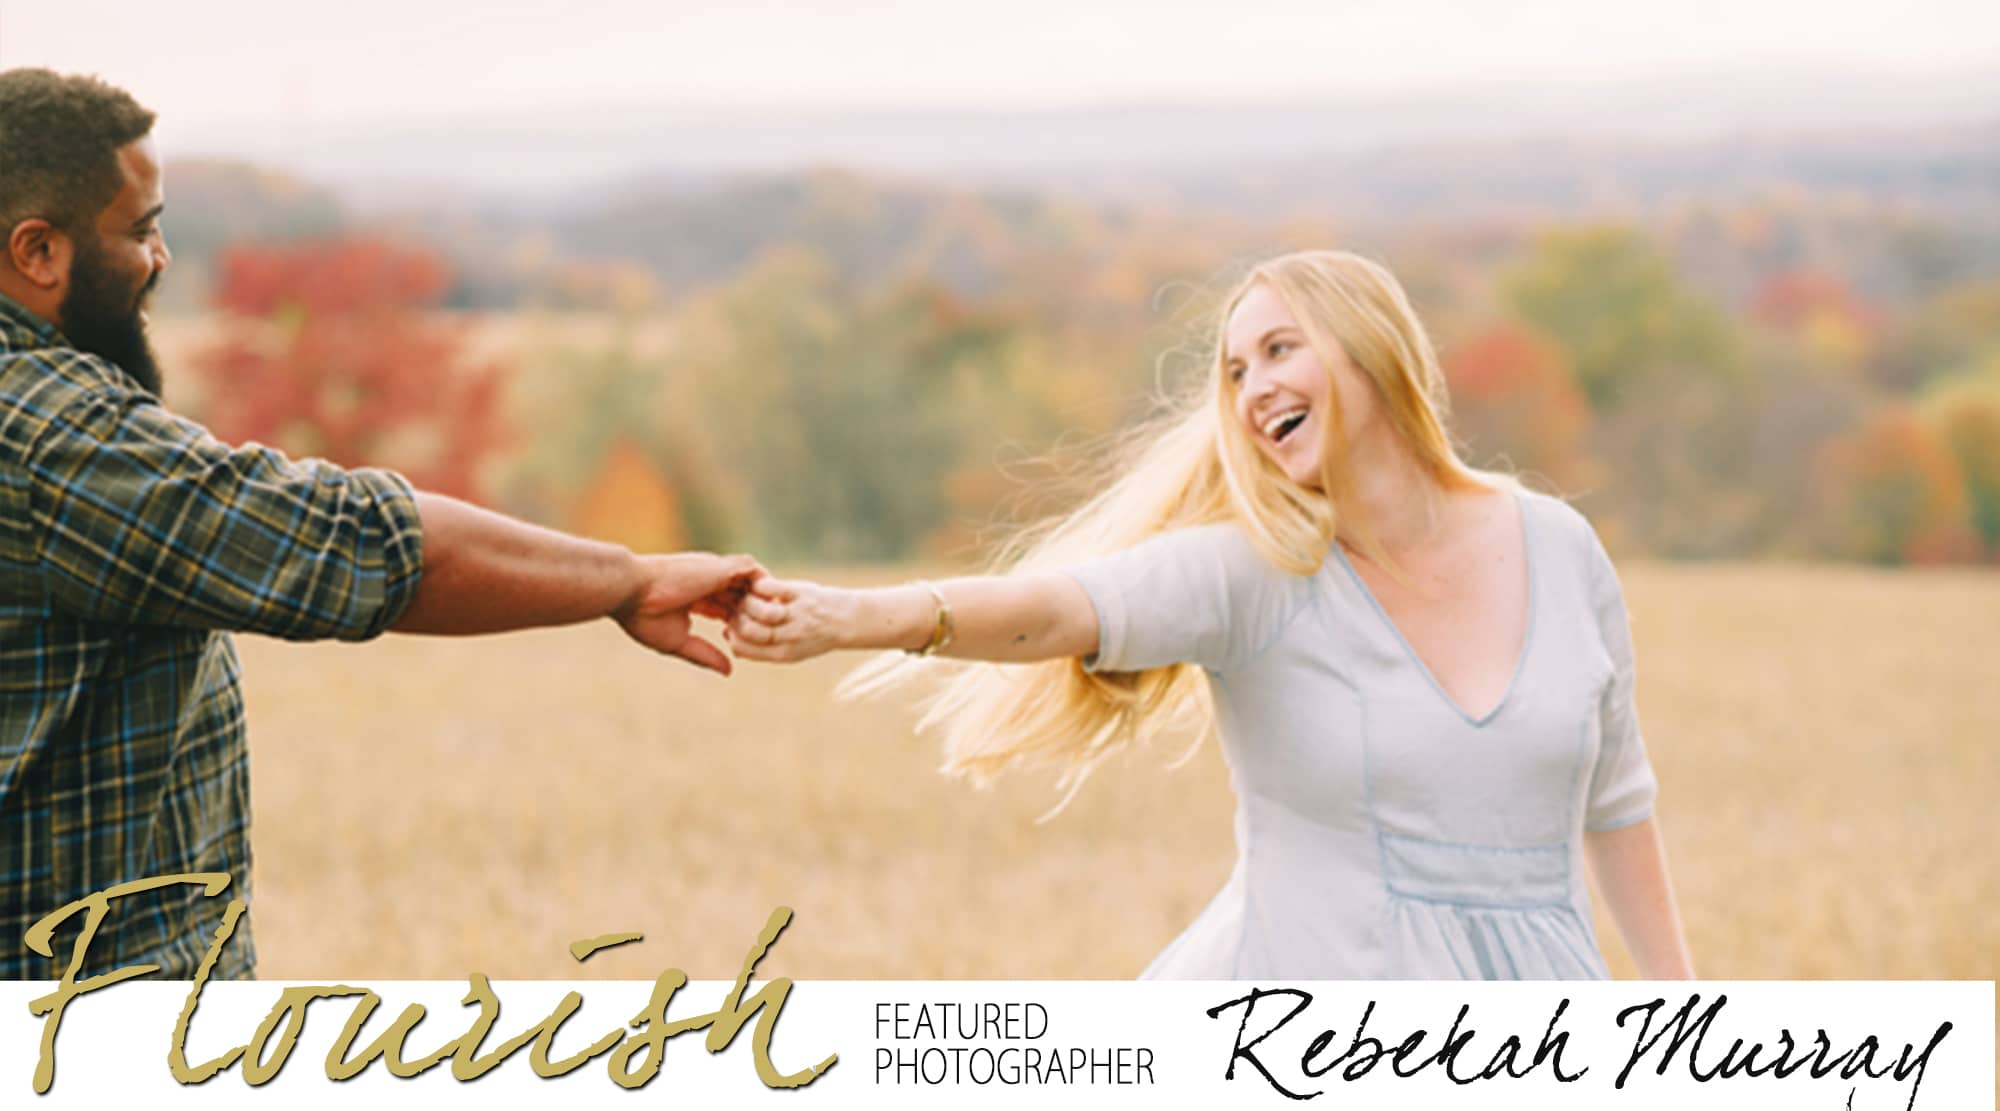 Flourish Featured Photographer | Rebekah Murray